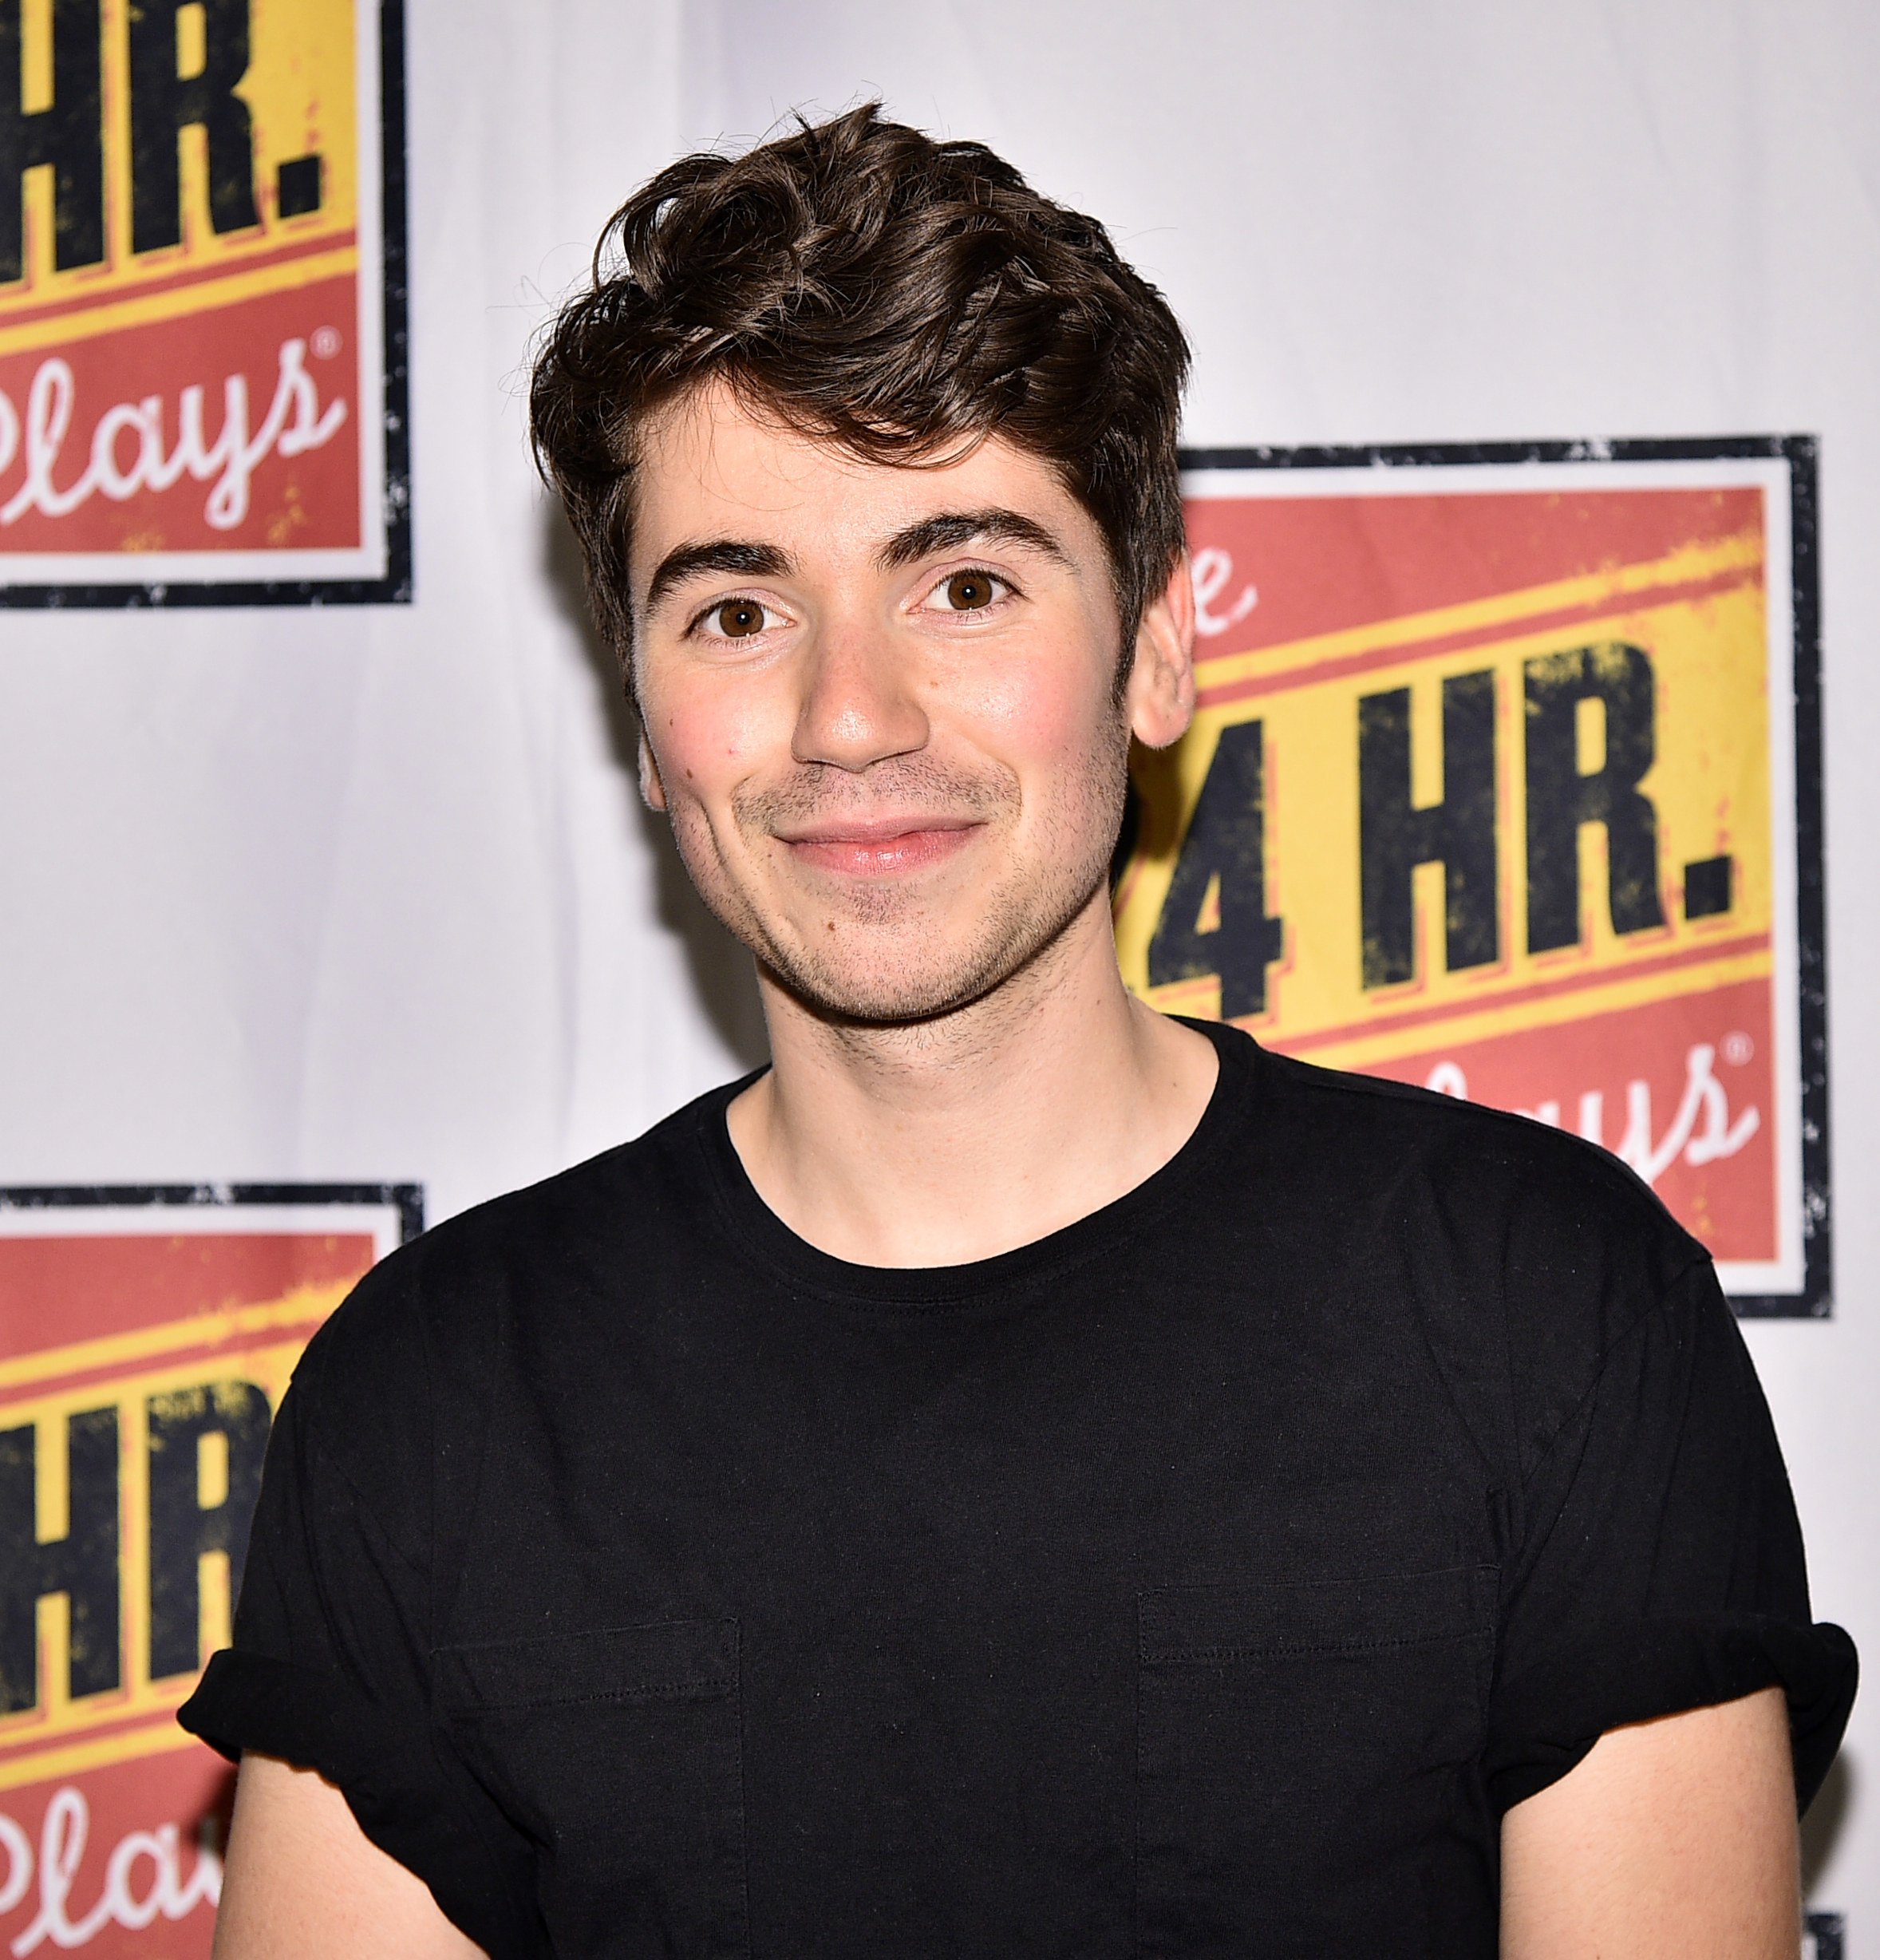 Noah Galvin attends 24 Hour Musicals at The Pershing Square Signature Center on June 17, 2019 in New York City